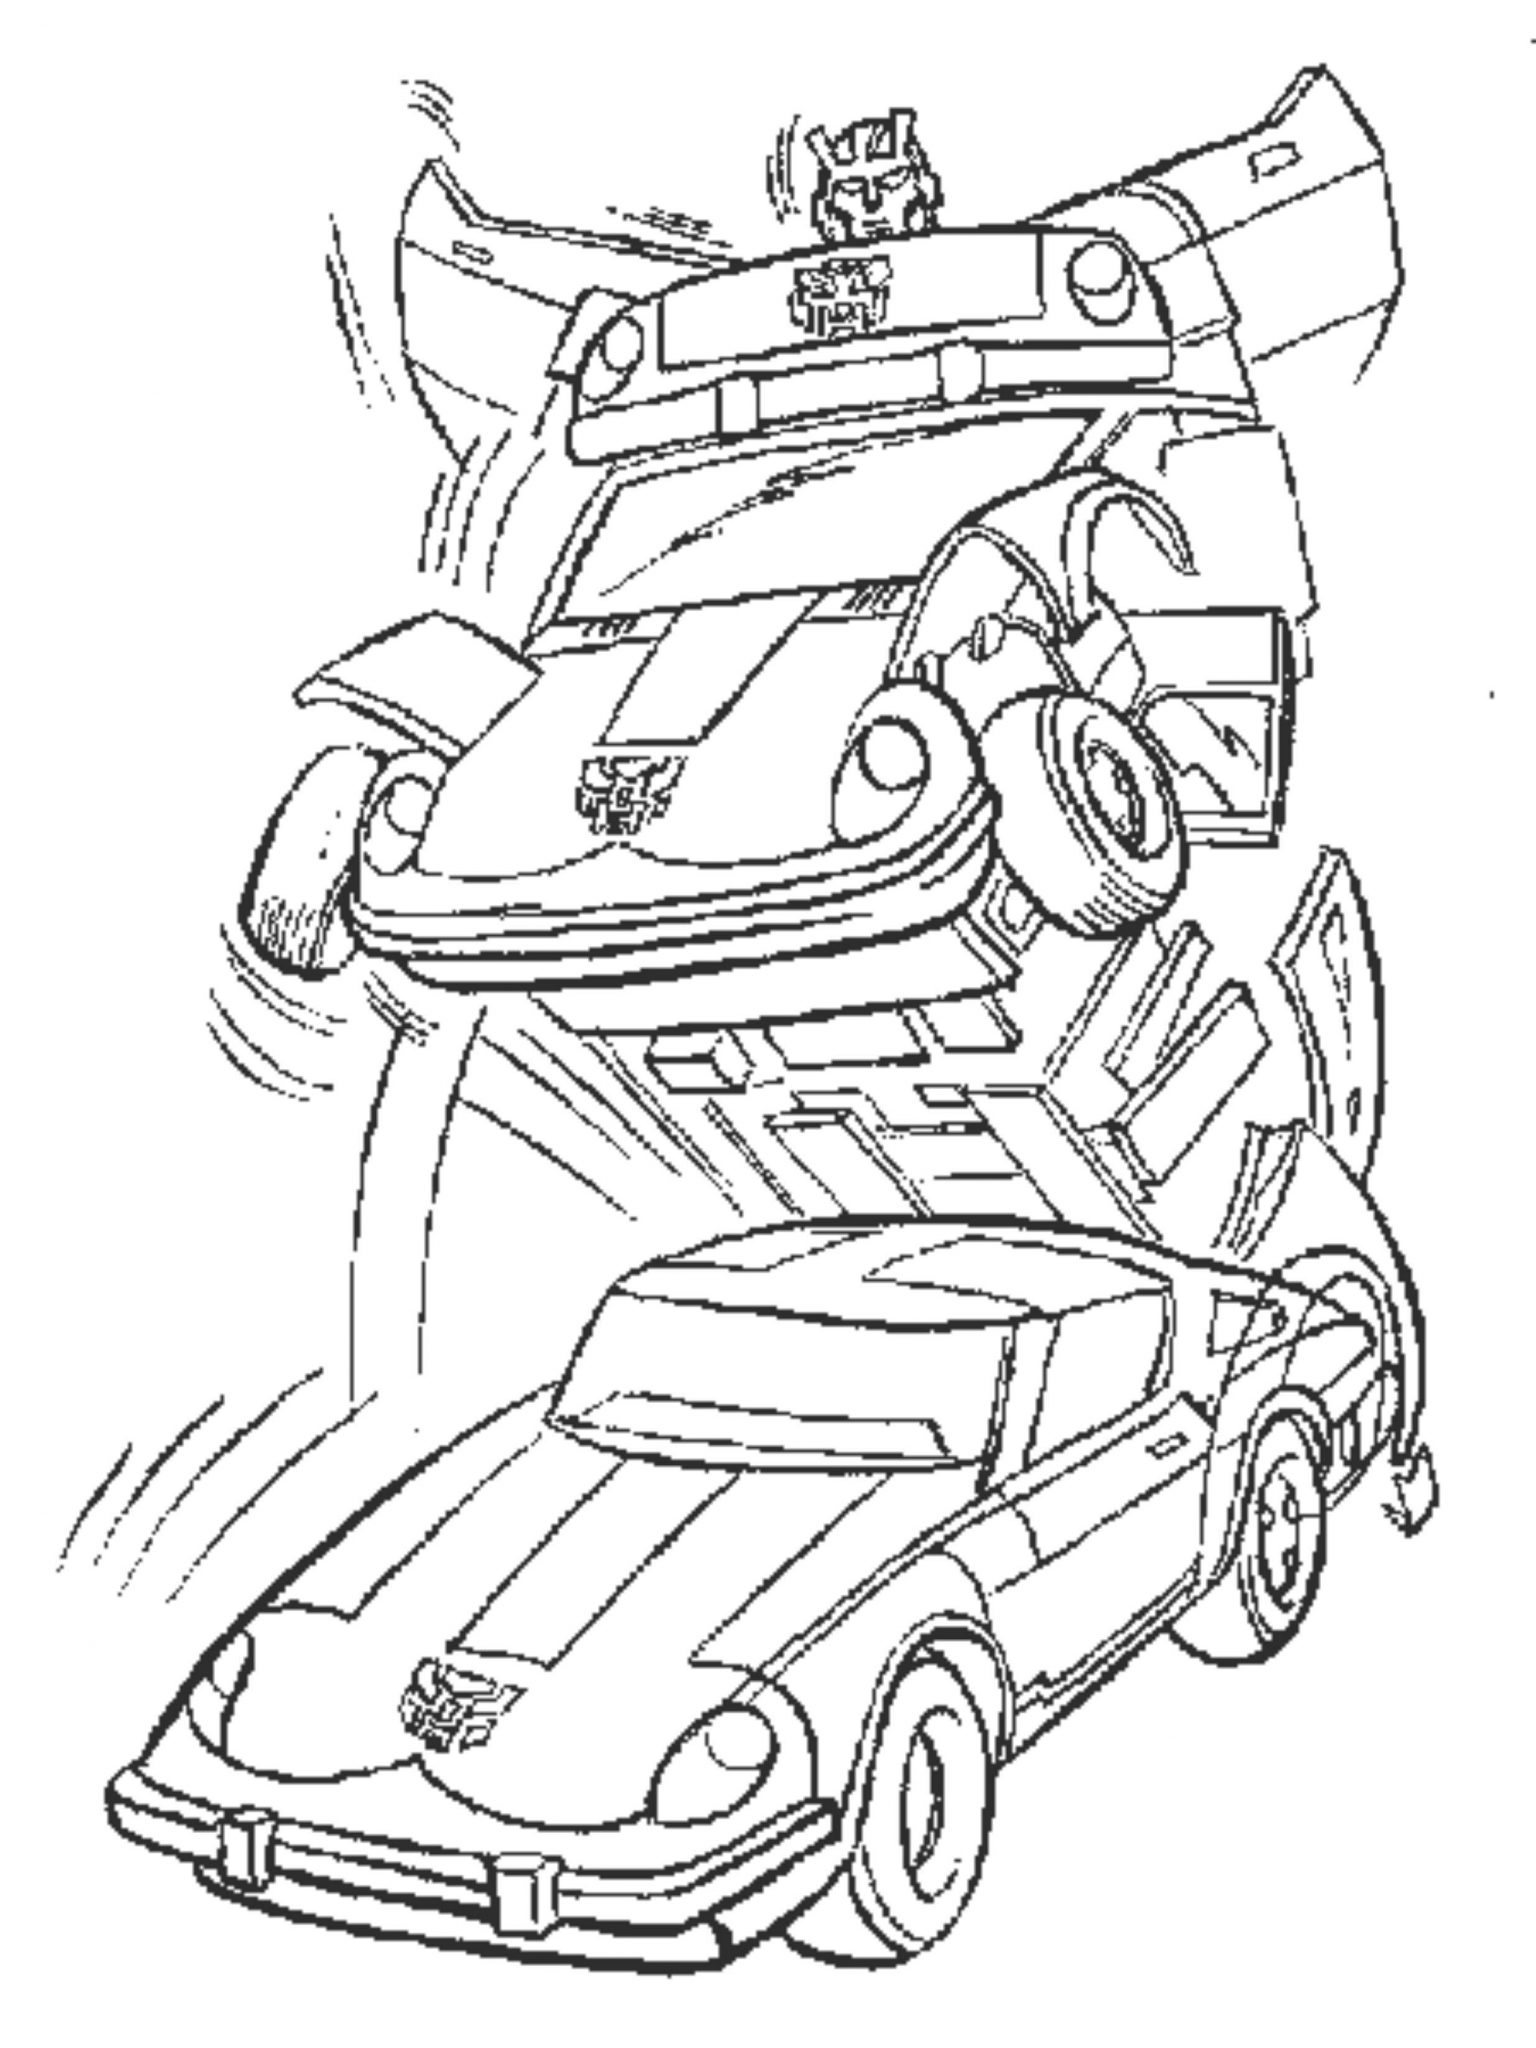 Bumblebee Tranformers Car Coloring Pages Printable